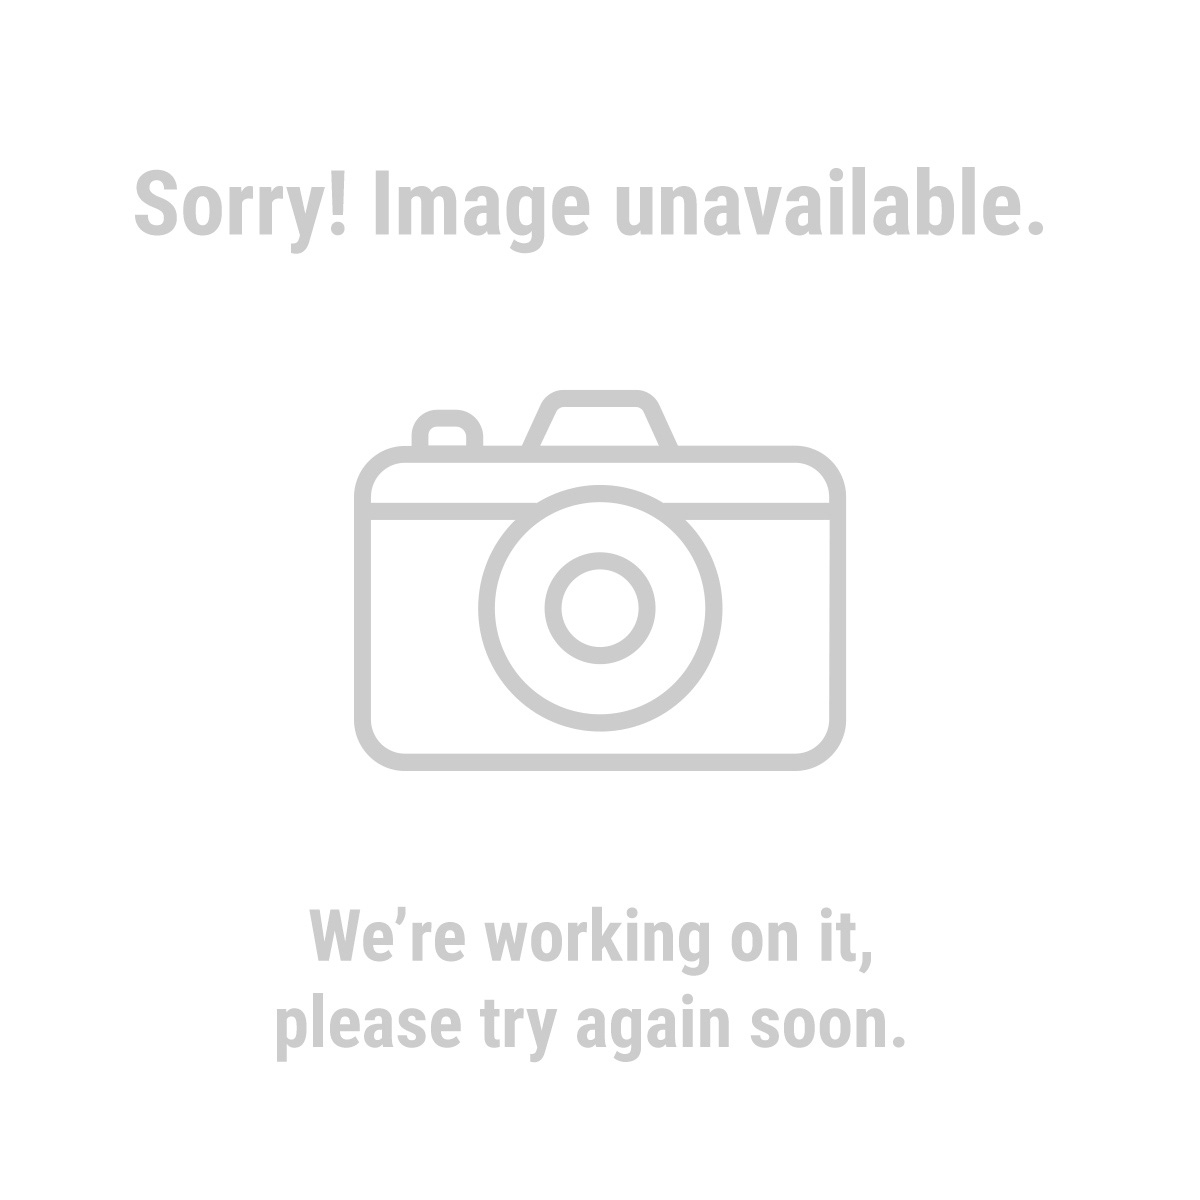 3 Piece Curved Jaw Locking Pliers Set